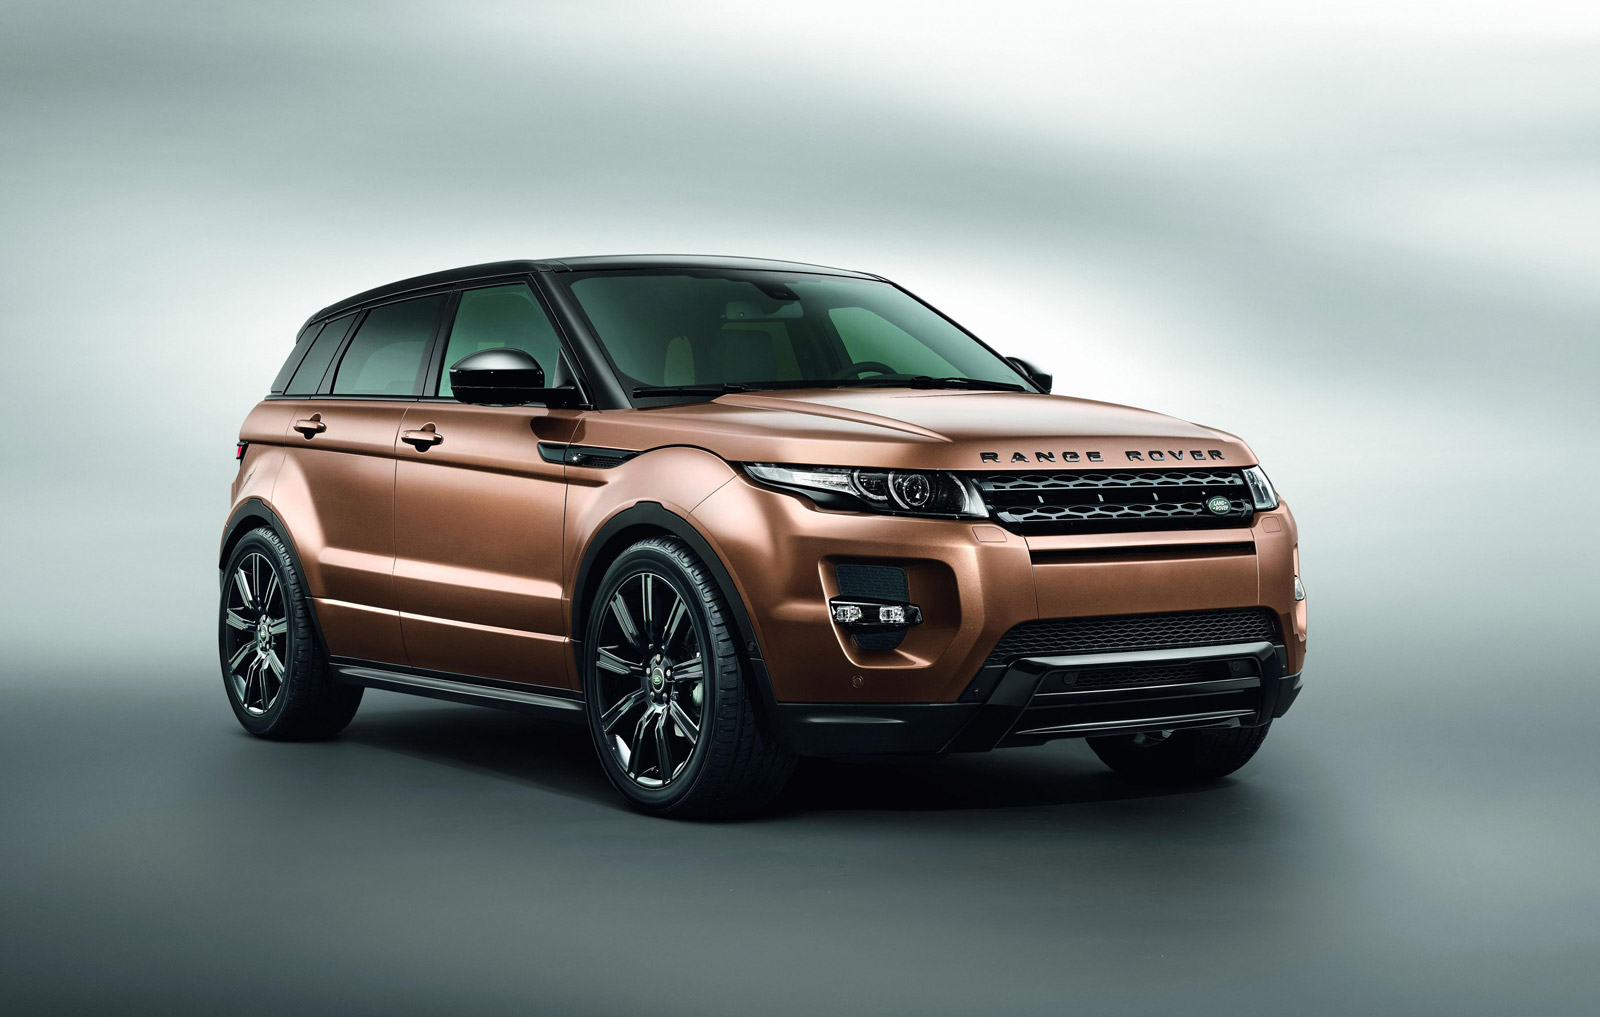 2014 land rover range rover evoque european spec 100437315. Black Bedroom Furniture Sets. Home Design Ideas